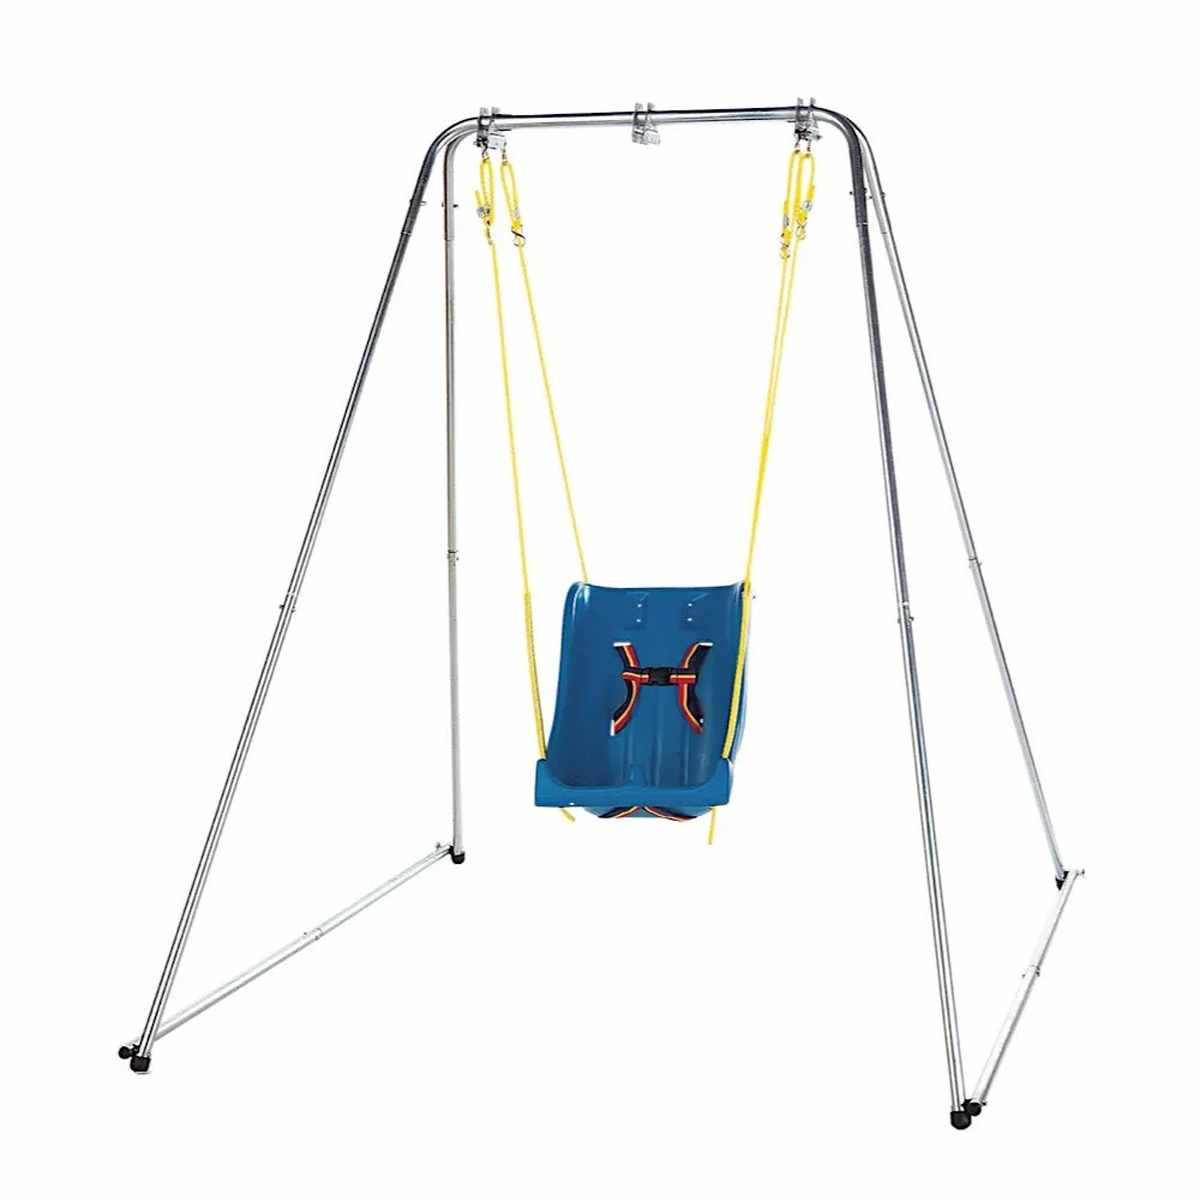 Skillbuilders Portable Swing Seat Frame - Indoor/Outdoor | Medicaleshop